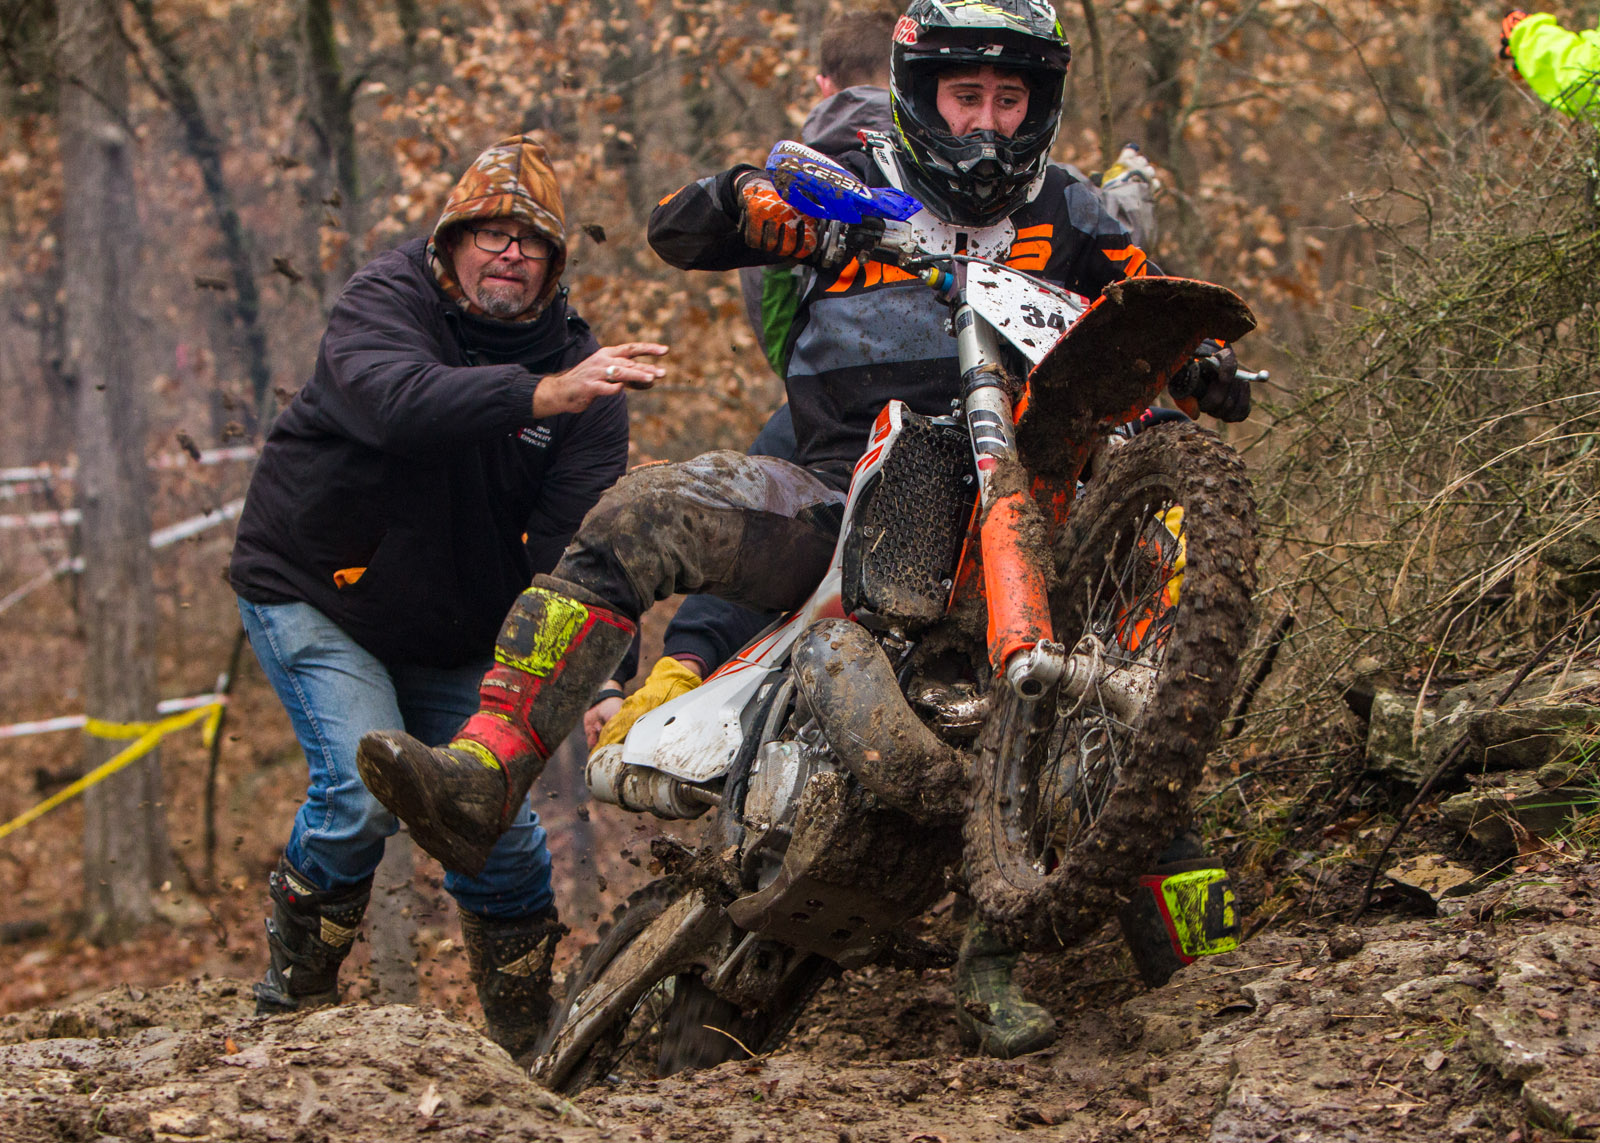 revlimiter-extreme-enduro-saturday-17